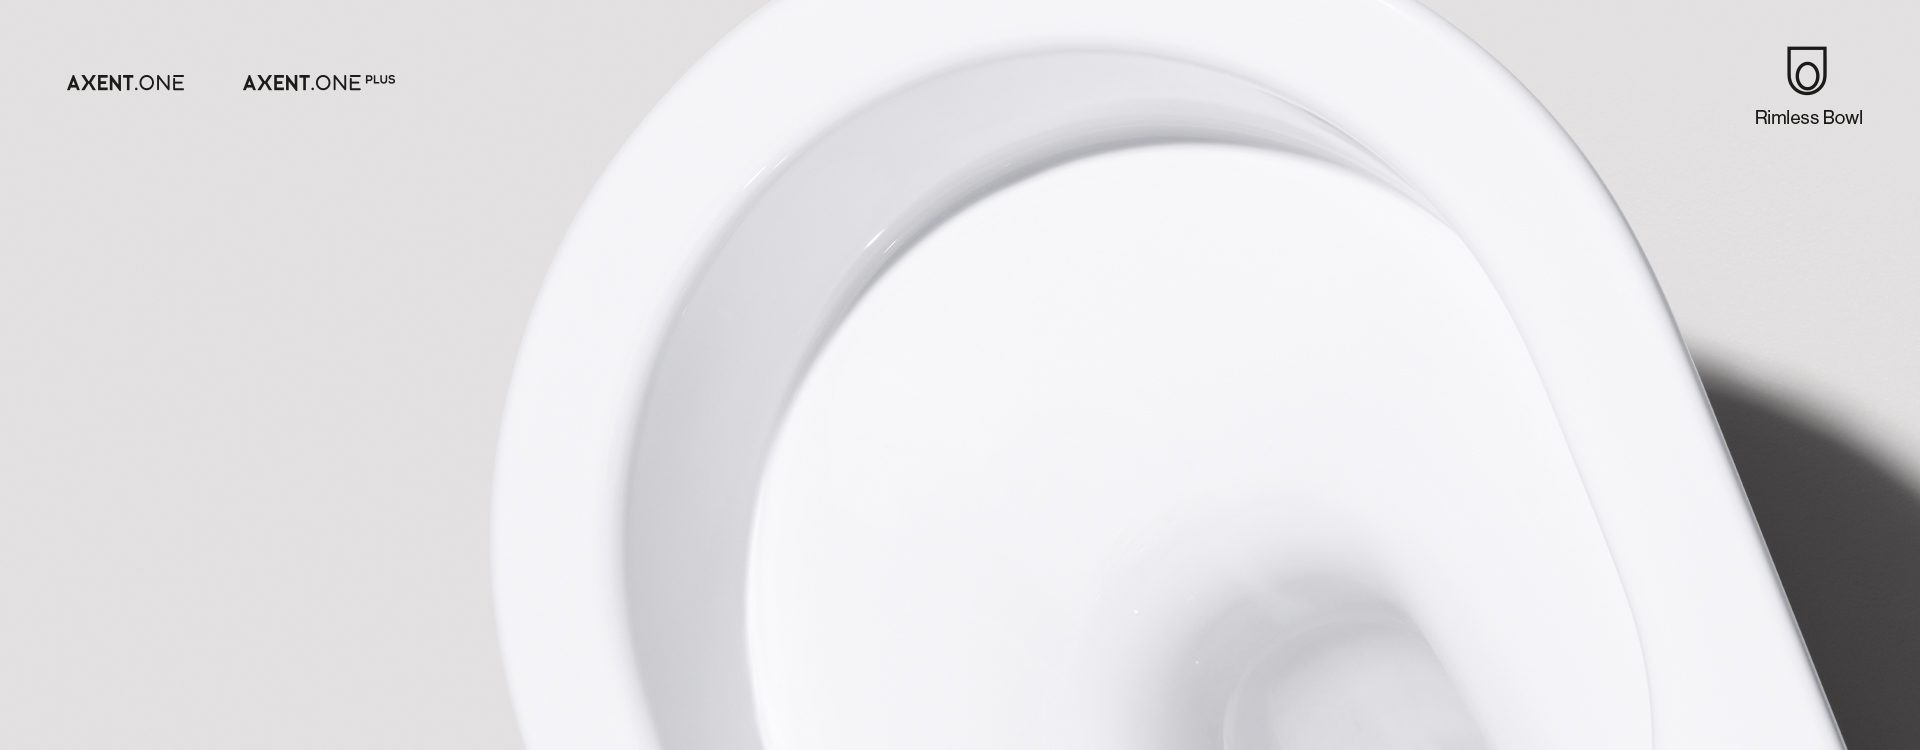 AXENT.ONE Shower toilet | Features